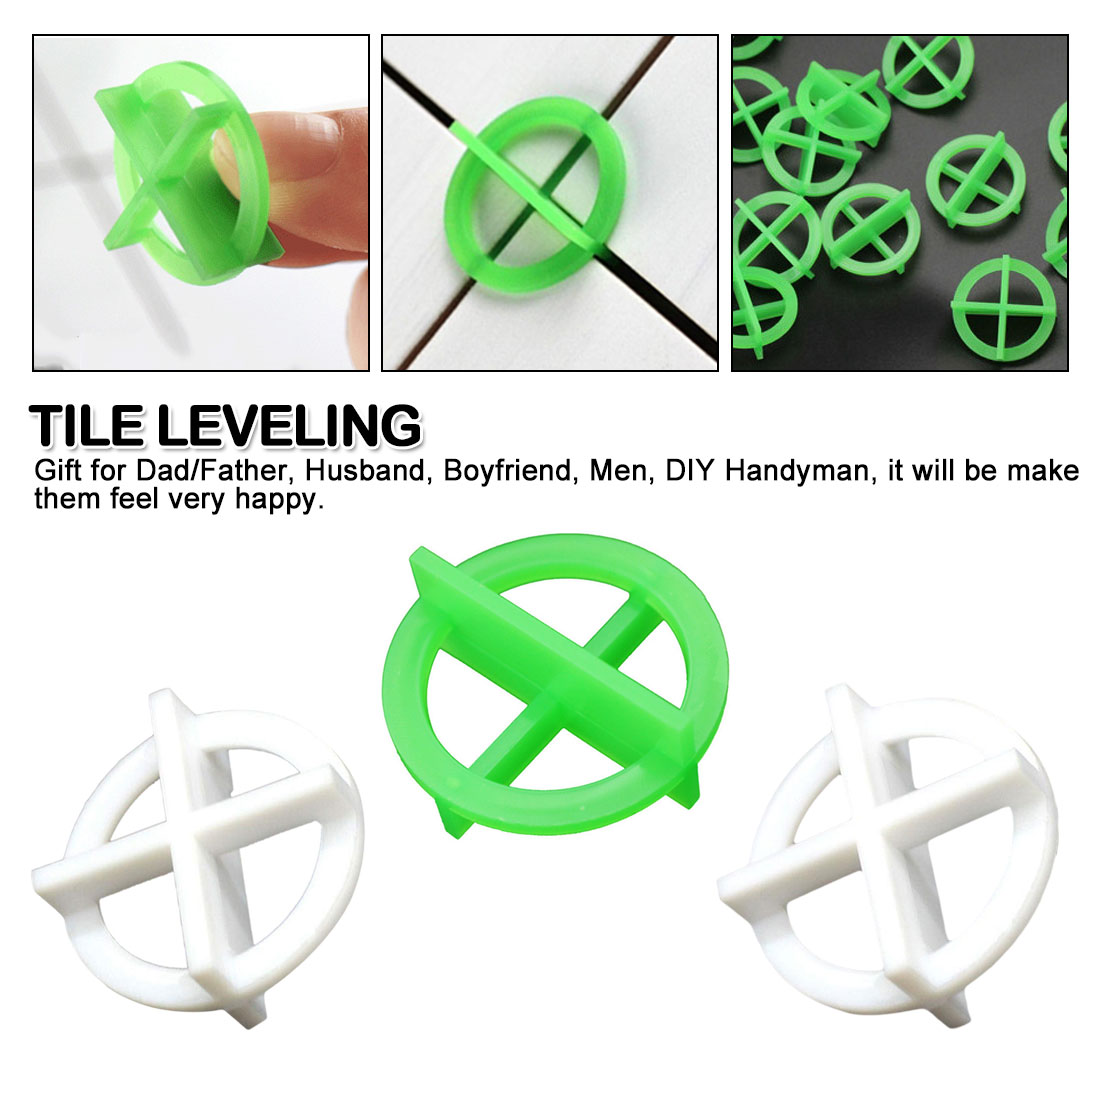 50pcs Removable Tile Leveling System Slit Locator Floor Laying Tile Alignment Leveler Clips Construction Tool 1.5/2.0/3.0mm